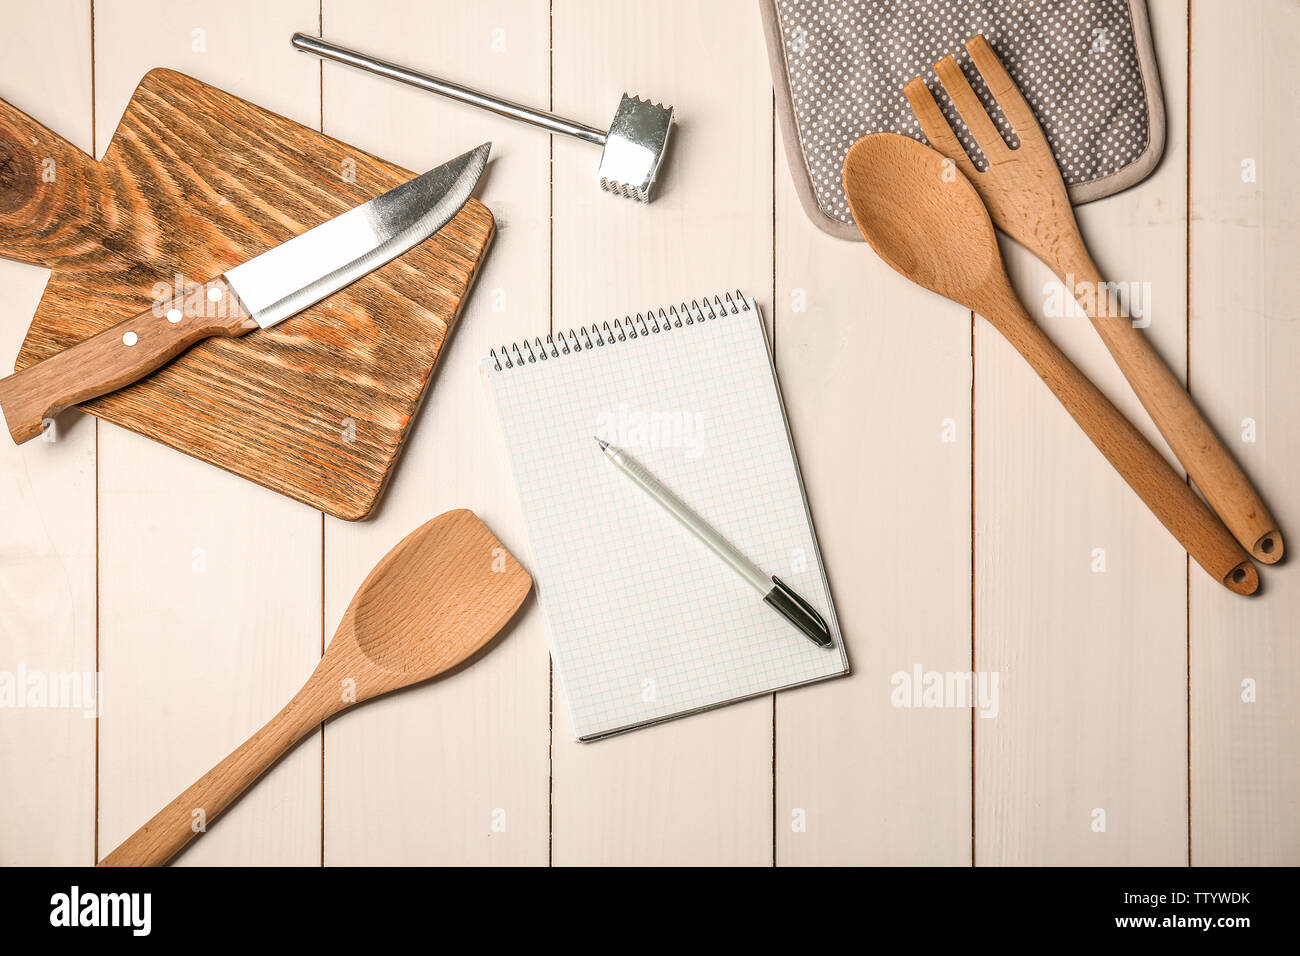 Kitchen utensils with empty notebook on wooden table - Stock Image